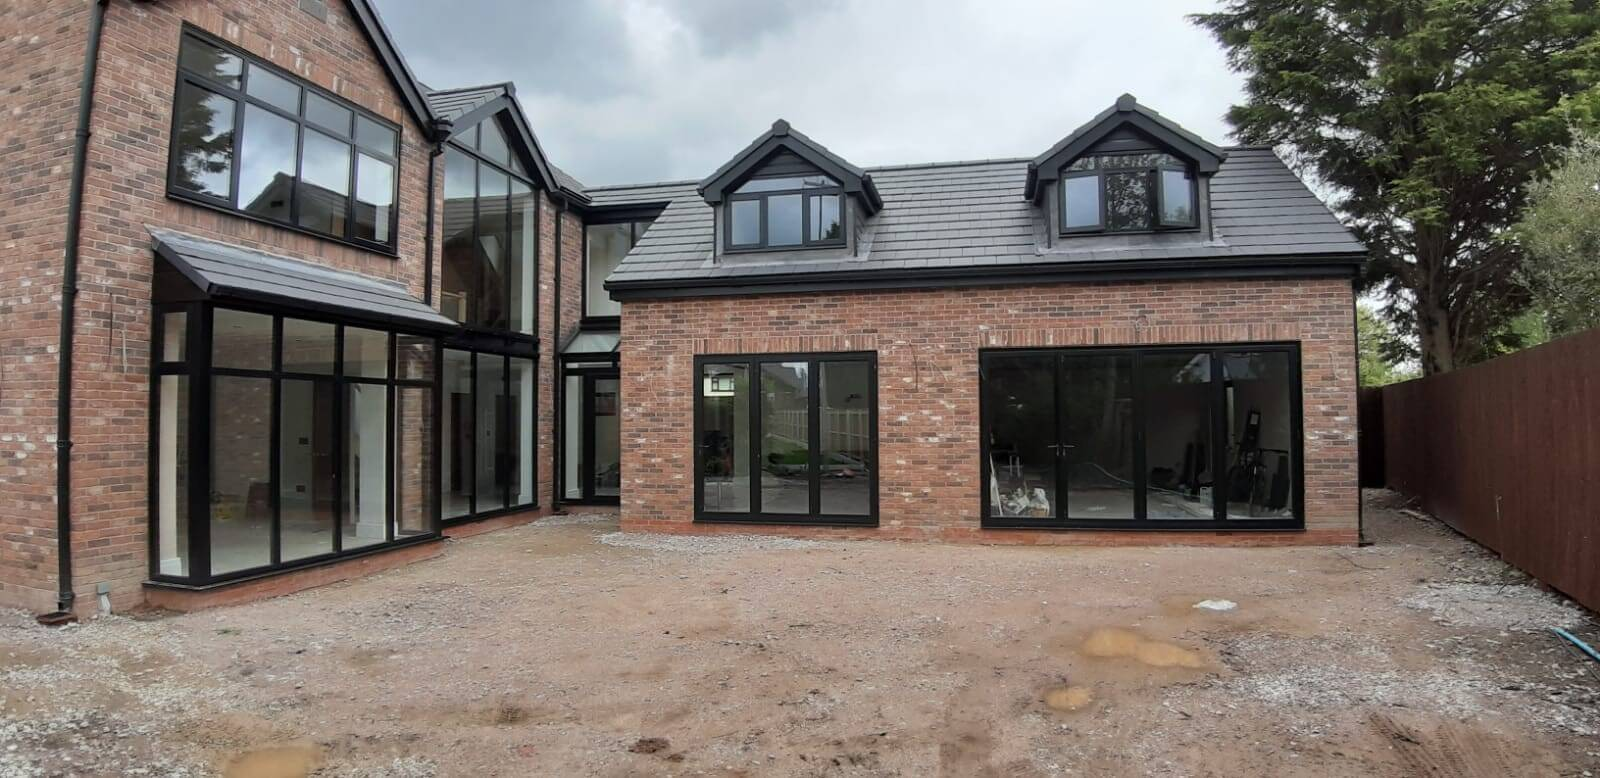 This Image shows a new build home where Celsius Home Improvements installed all of the aluminium windows and bi-fold doors. The property is in Aughton, Ormskirk.